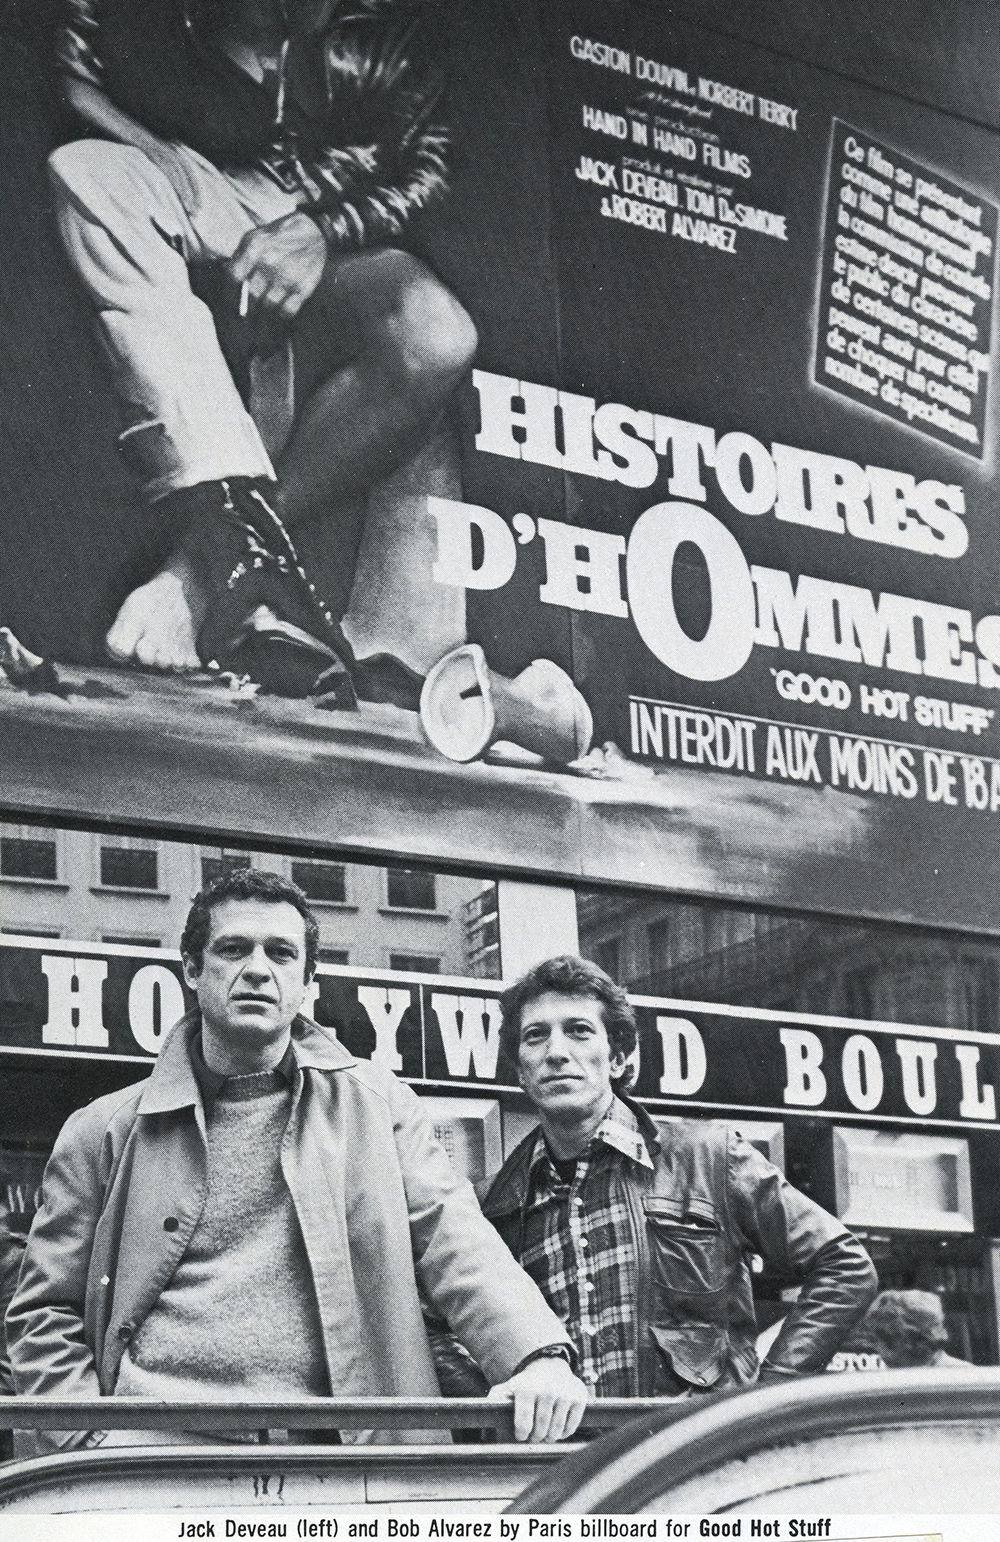 Jack and Robert Alvarez in front of a Histoires d'Hommes billboard in Paris